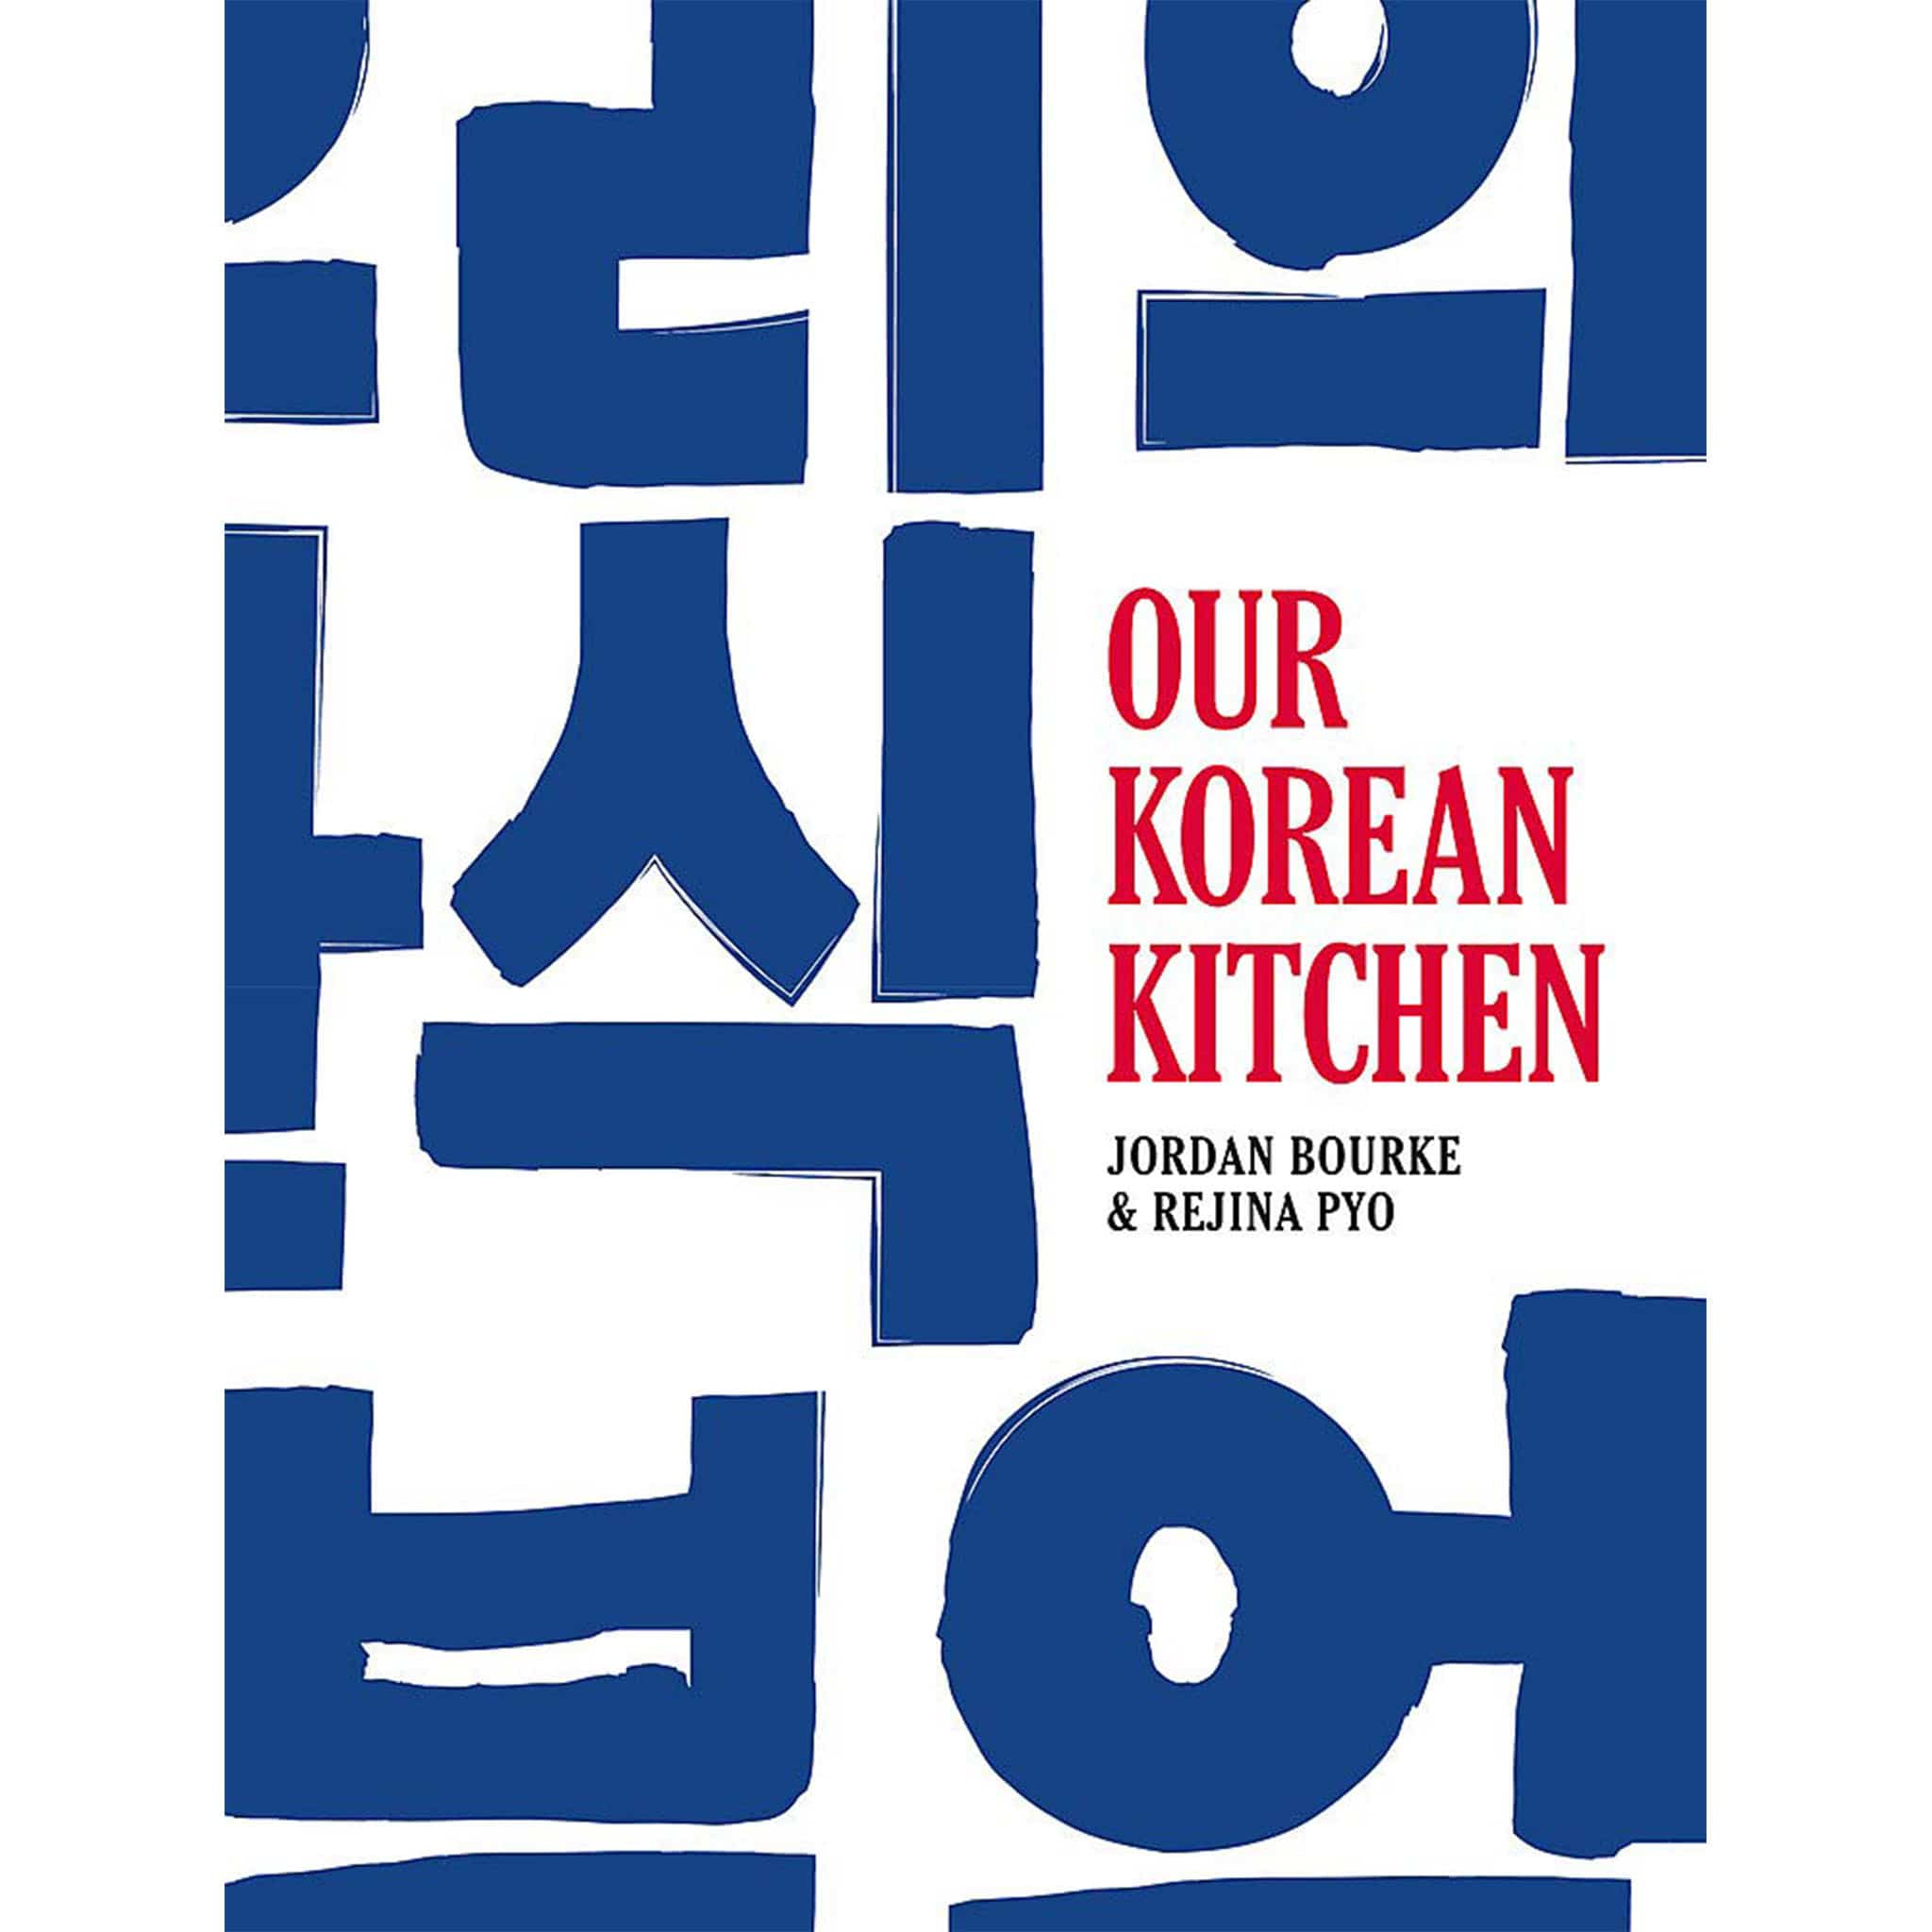 Our Korean Kitchen by Jordan Bourke & Rejina Pyo